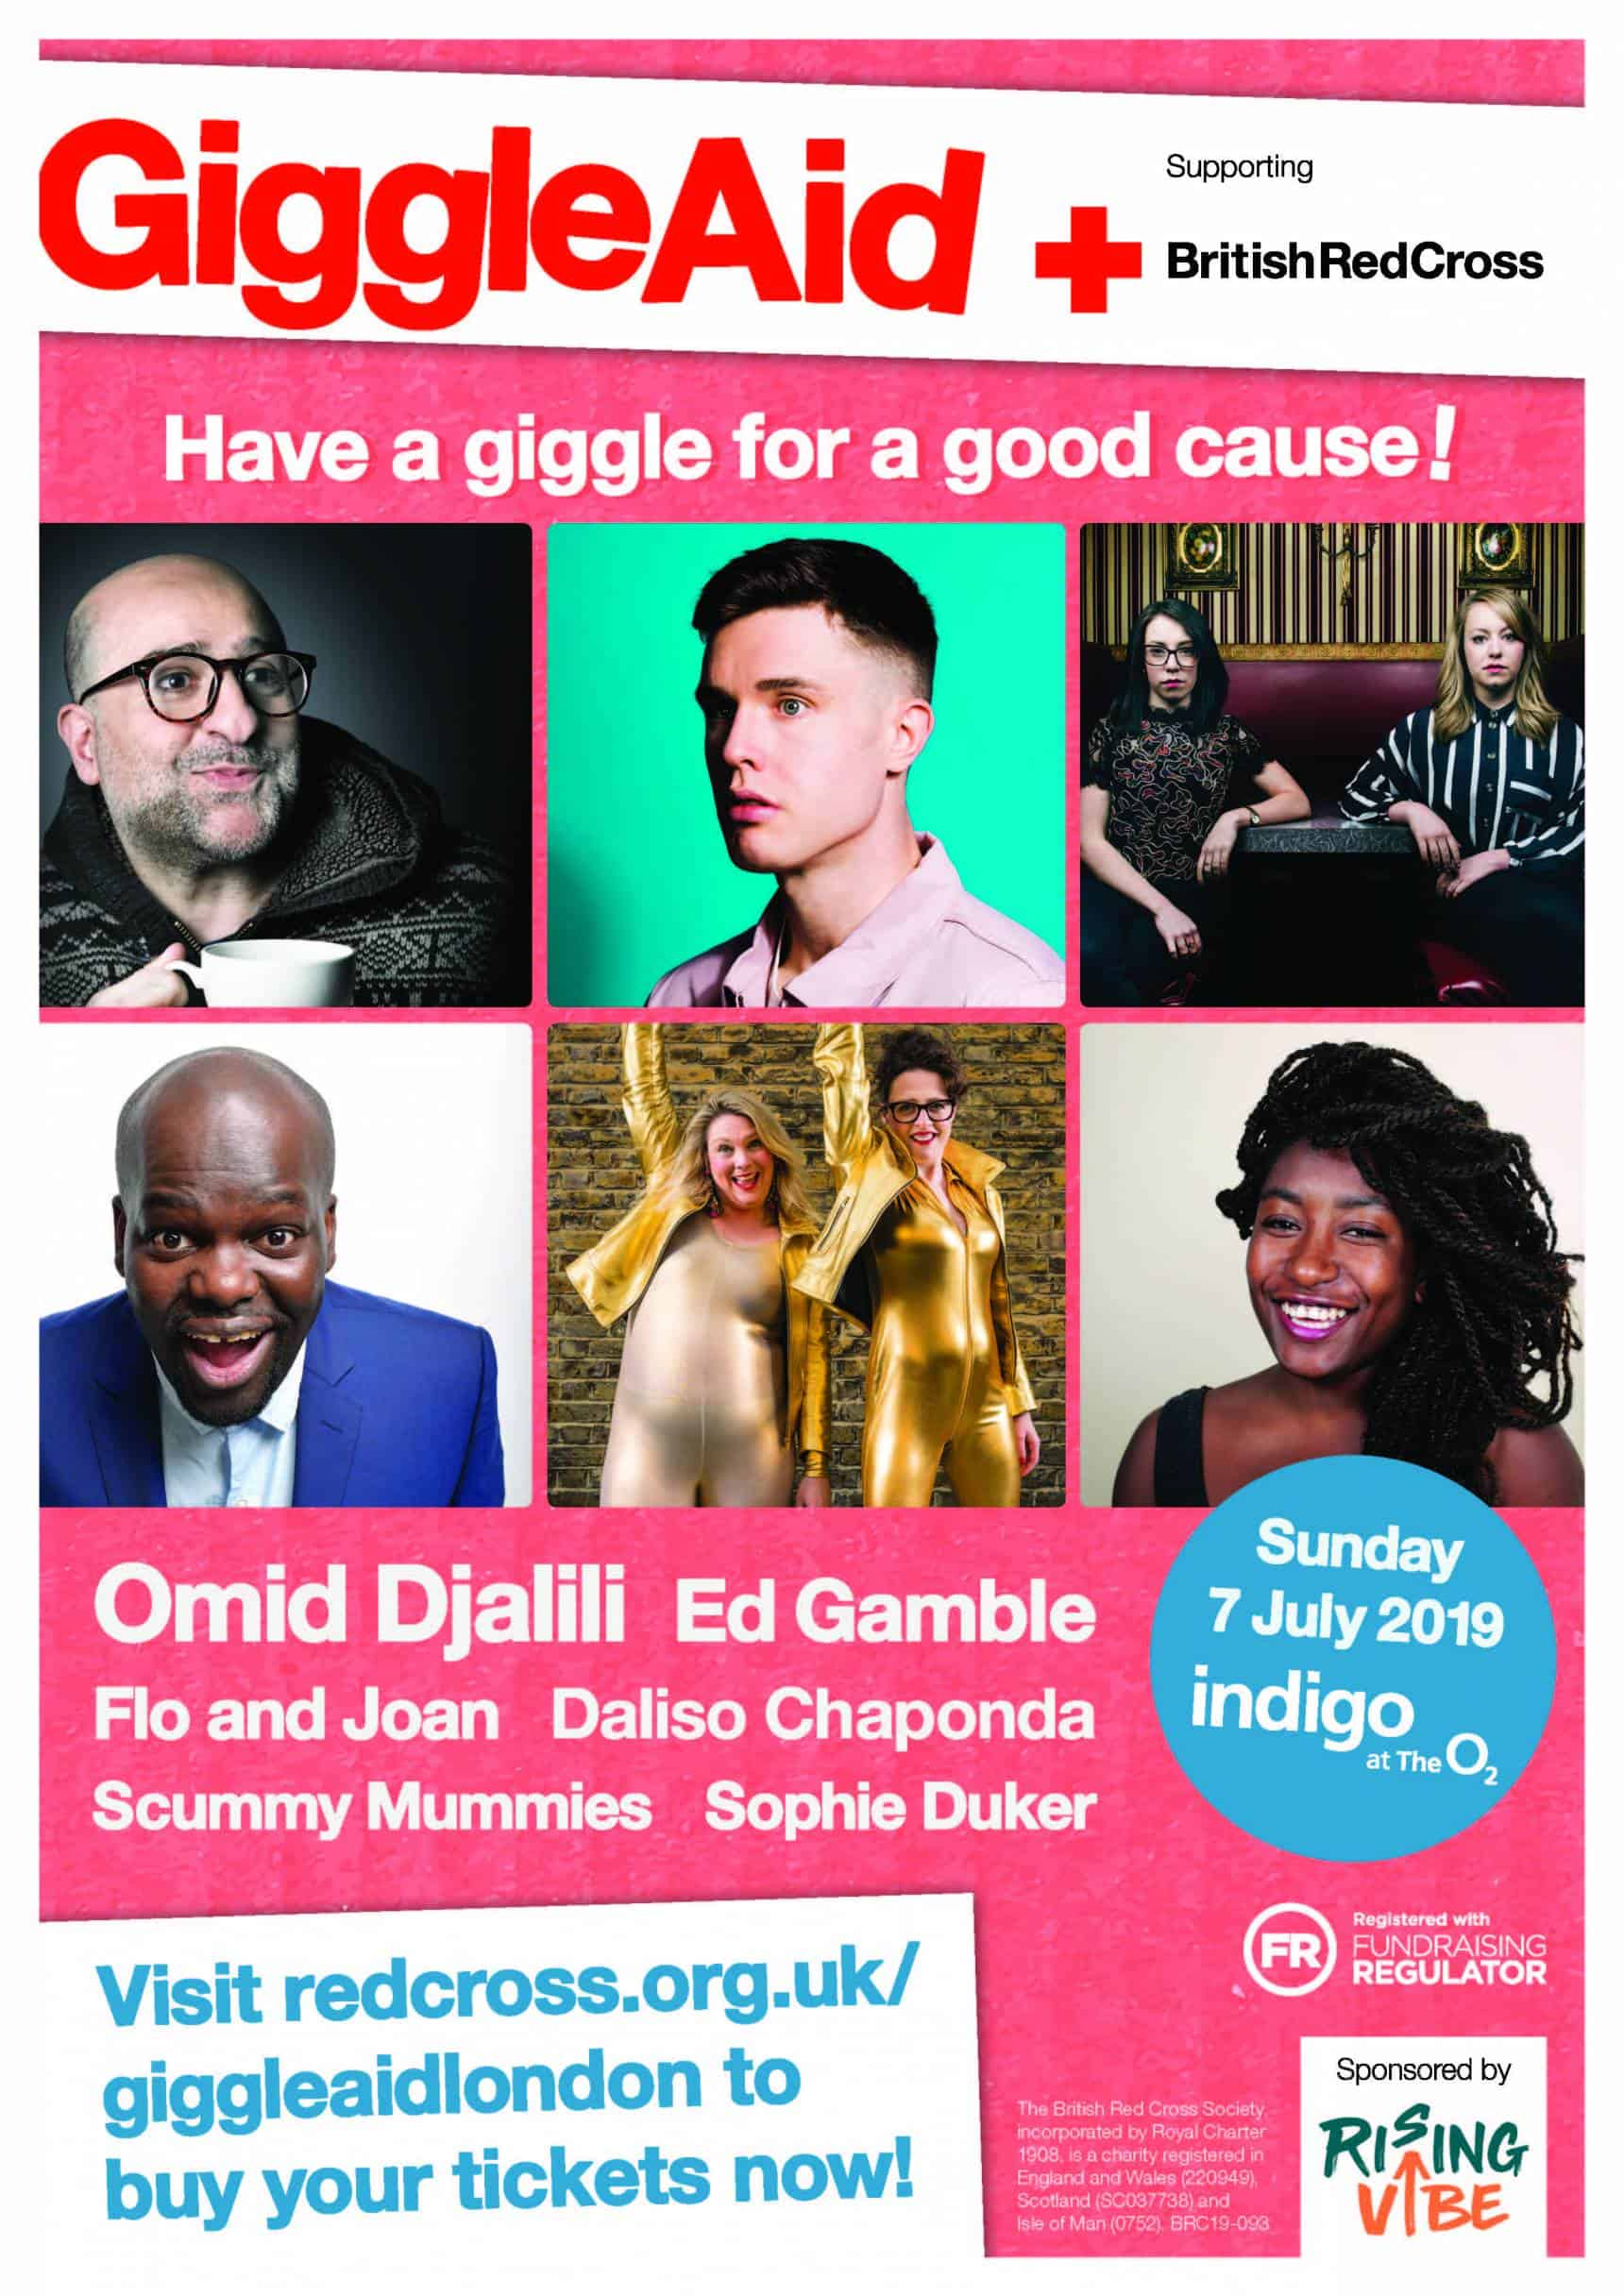 Win one of 3 pairs of tickets to Giggle Aid